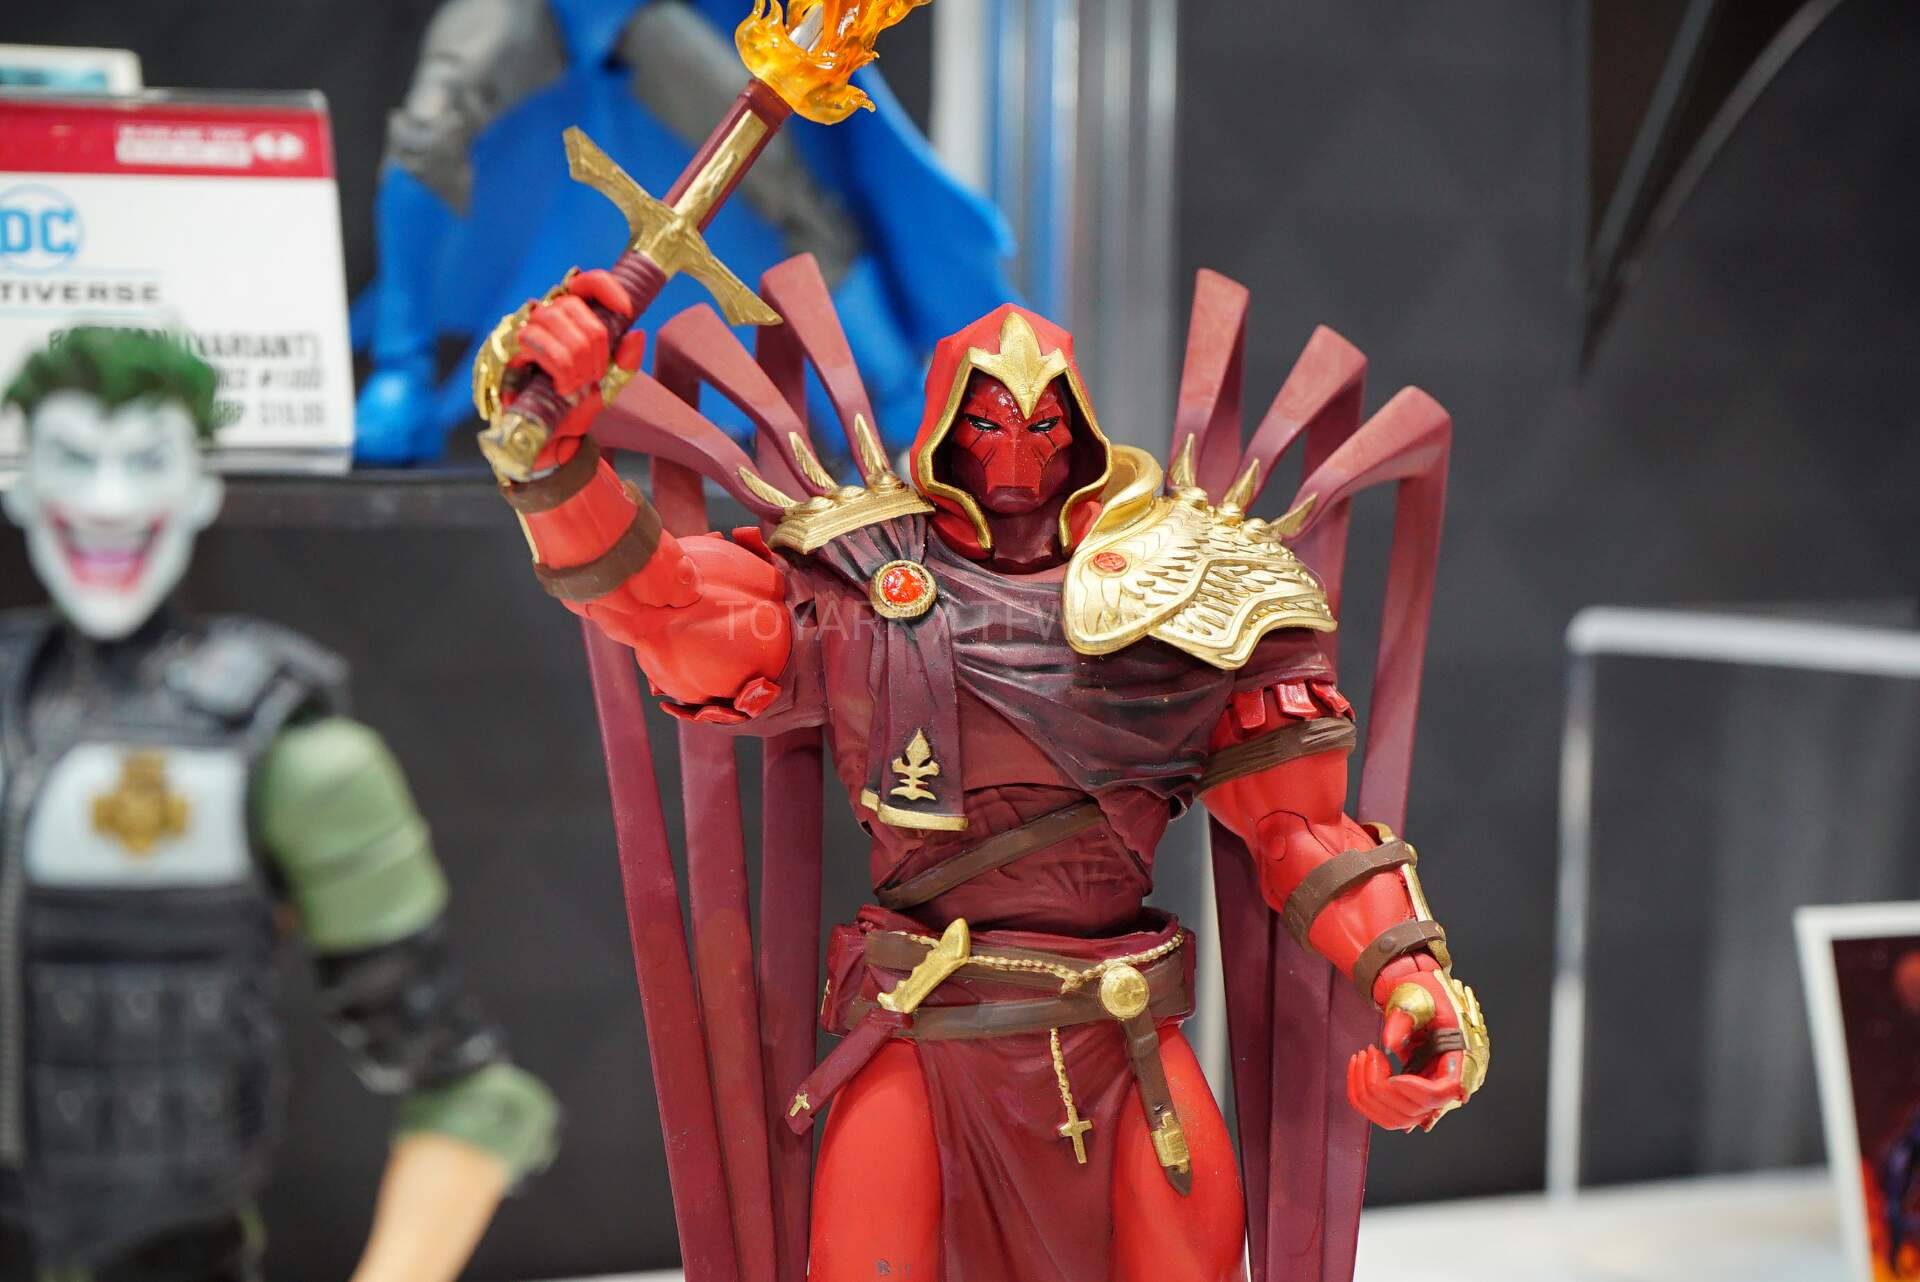 Toy-Fair-2020-McFarlane-DC-054.jpg